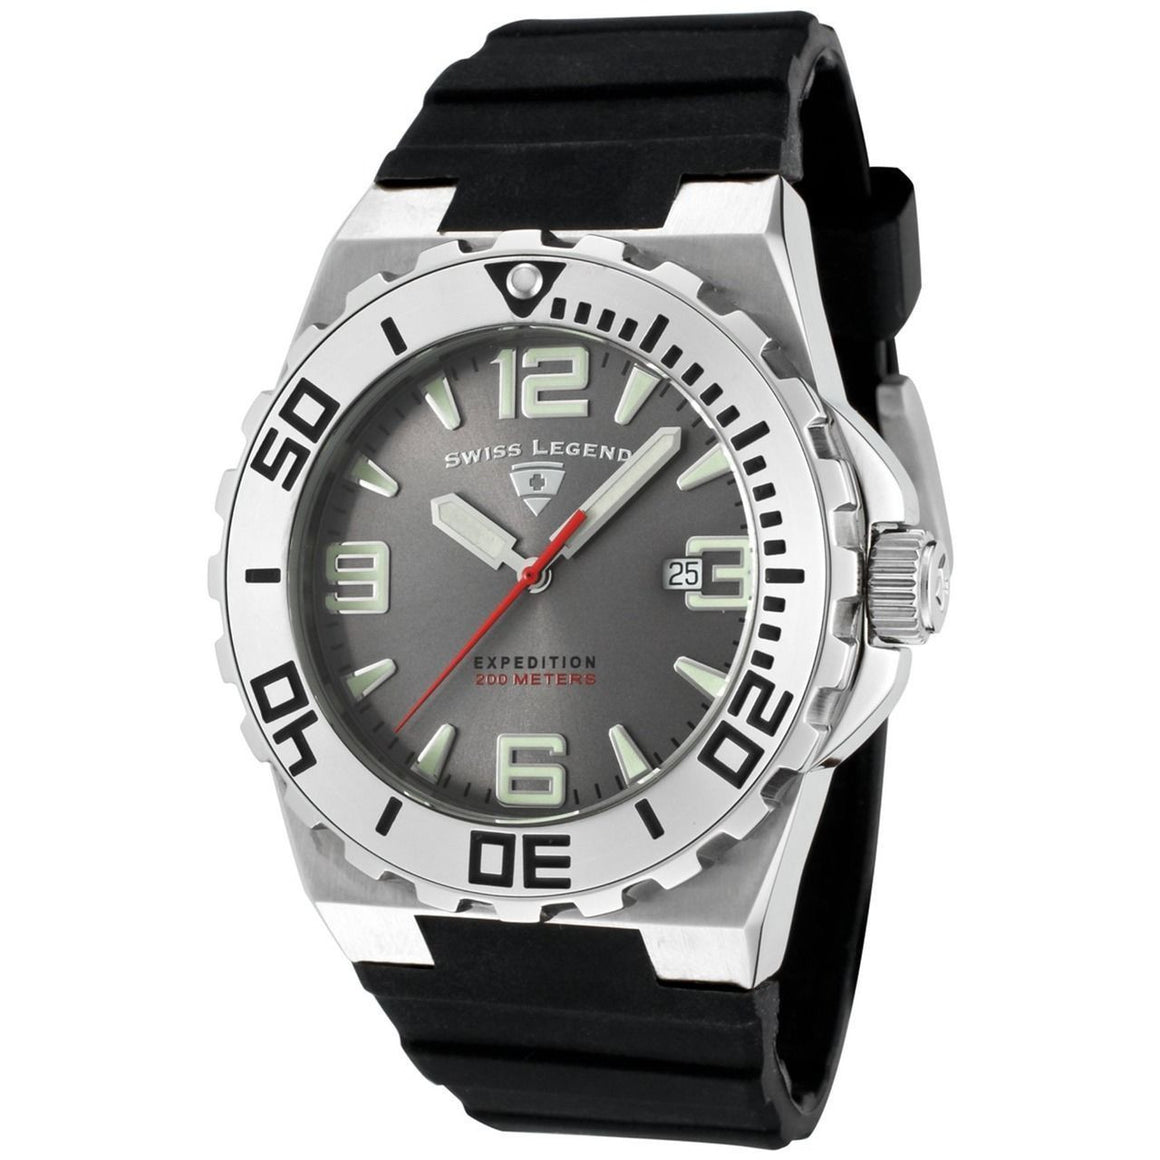 Swiss Legend Men's Expedition Dive Watch Grey Dial Black Rubber Band